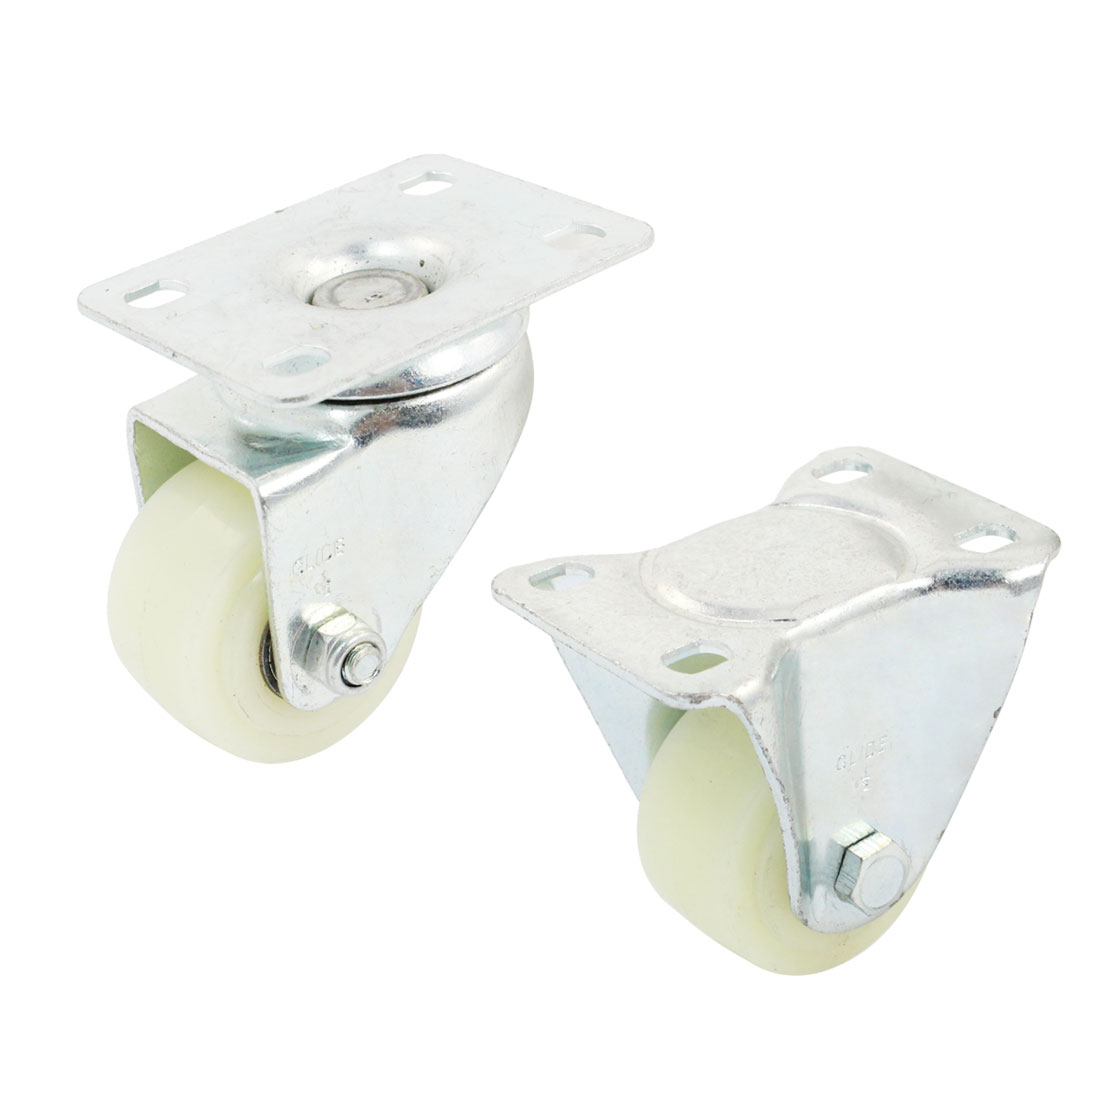 "Trolley 1.5"" Round Single Wheel Rectangle Top Plate 360 Degree Rotation Swivel Fixed Caster 4 in 1 Set"